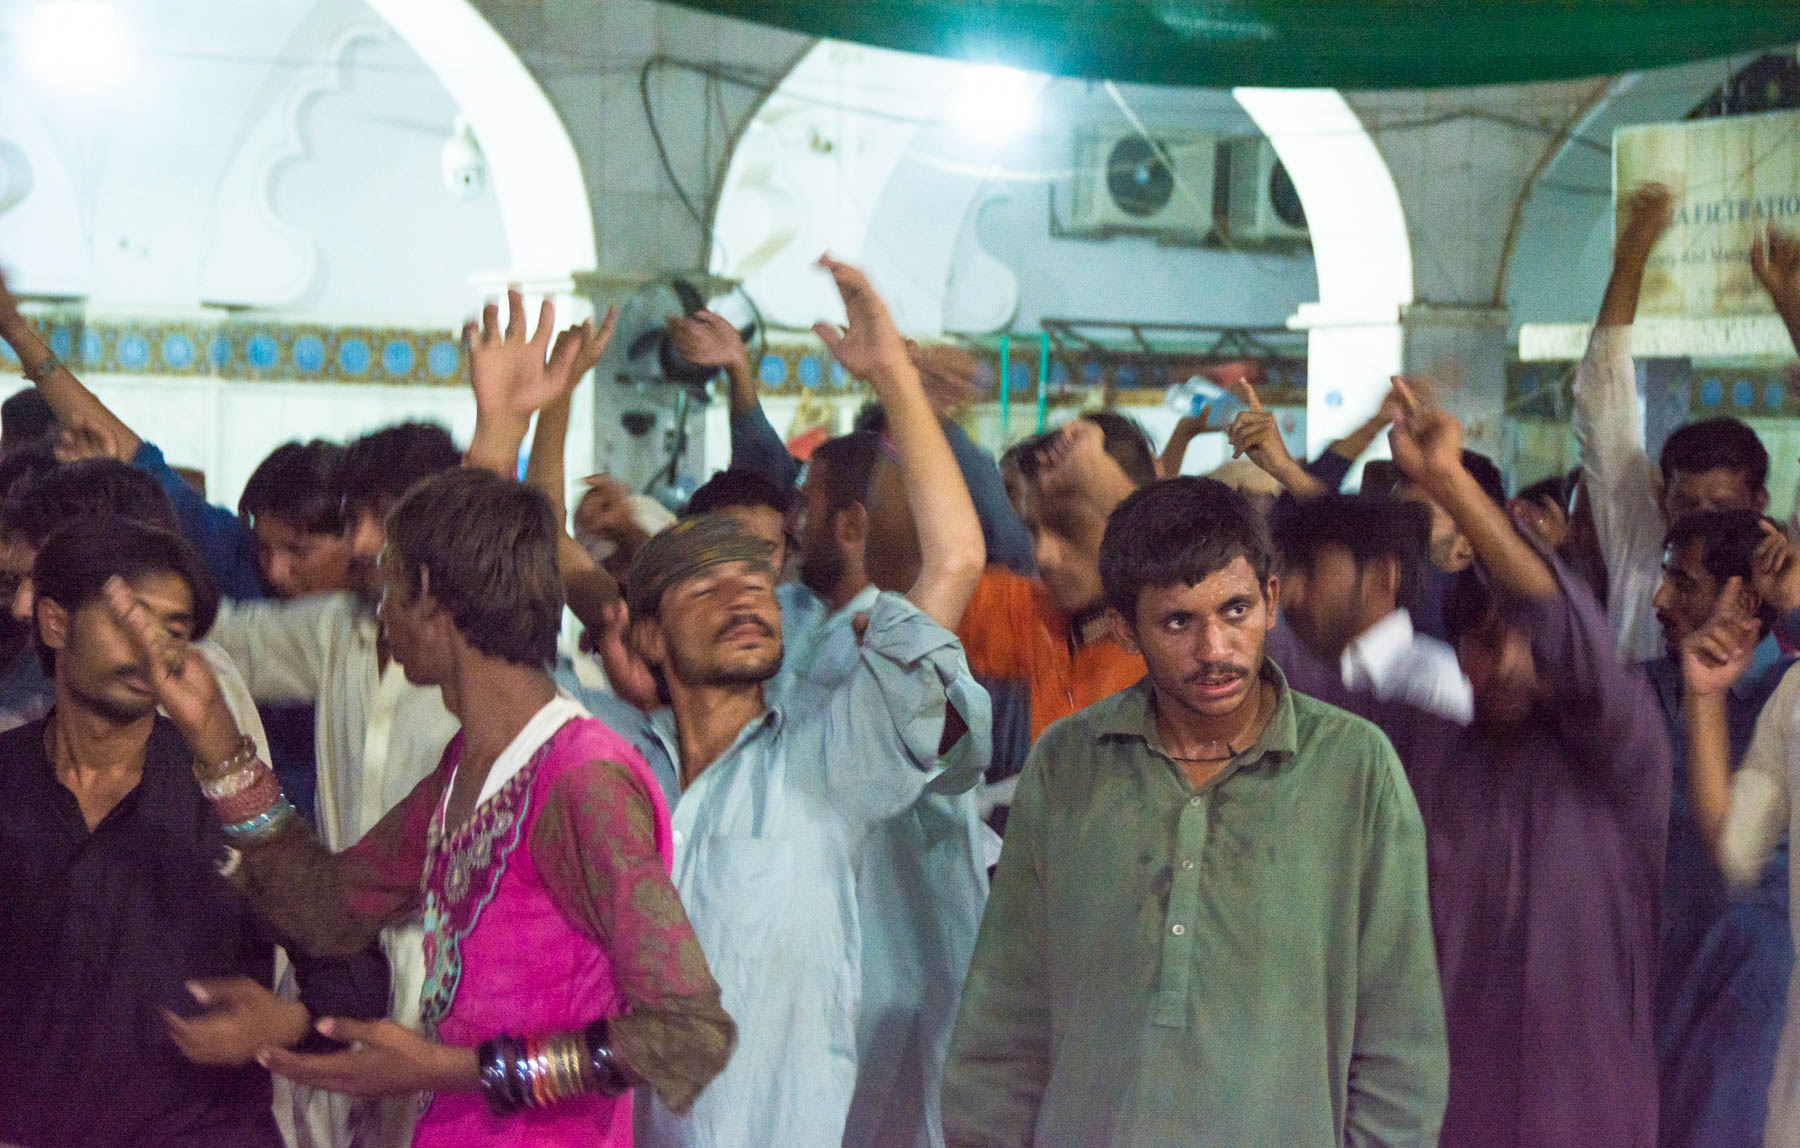 Experiences for your Pakistan bucket list - Dhamaal at the shrine of Lal Shahbaz Qalandar in Sehwan Sharif - Lost With Purpose travel blog